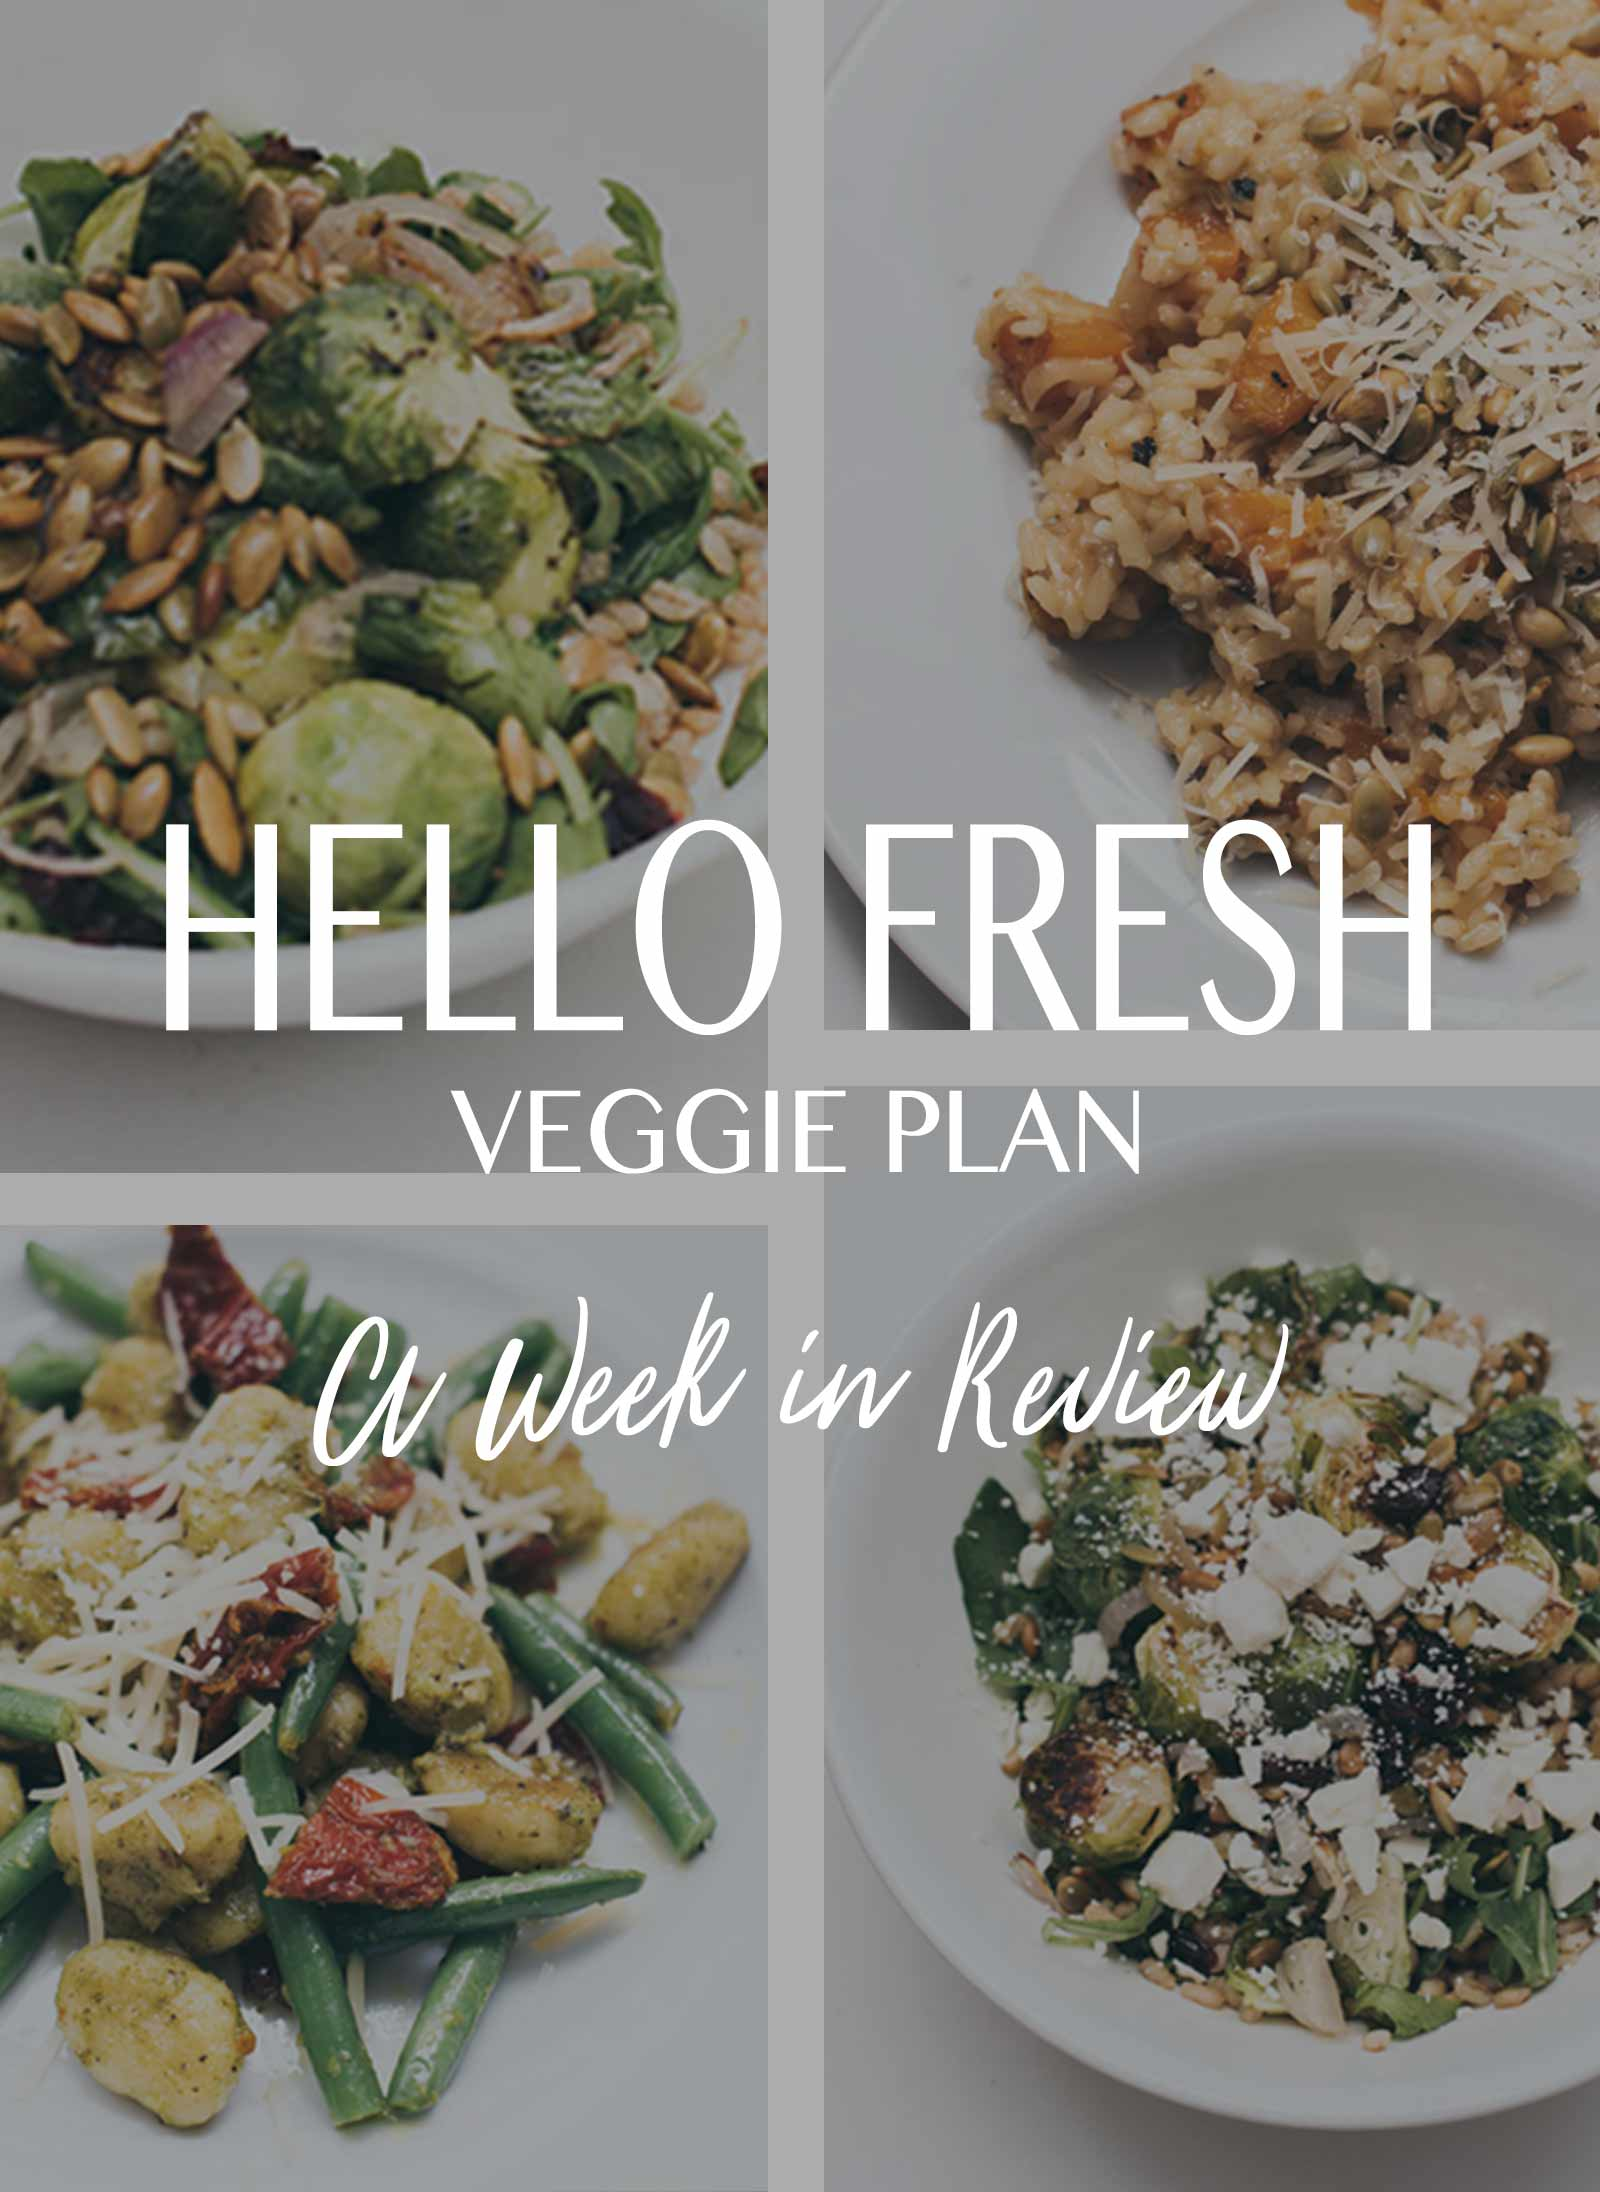 Free Warranty Extension Hellofresh